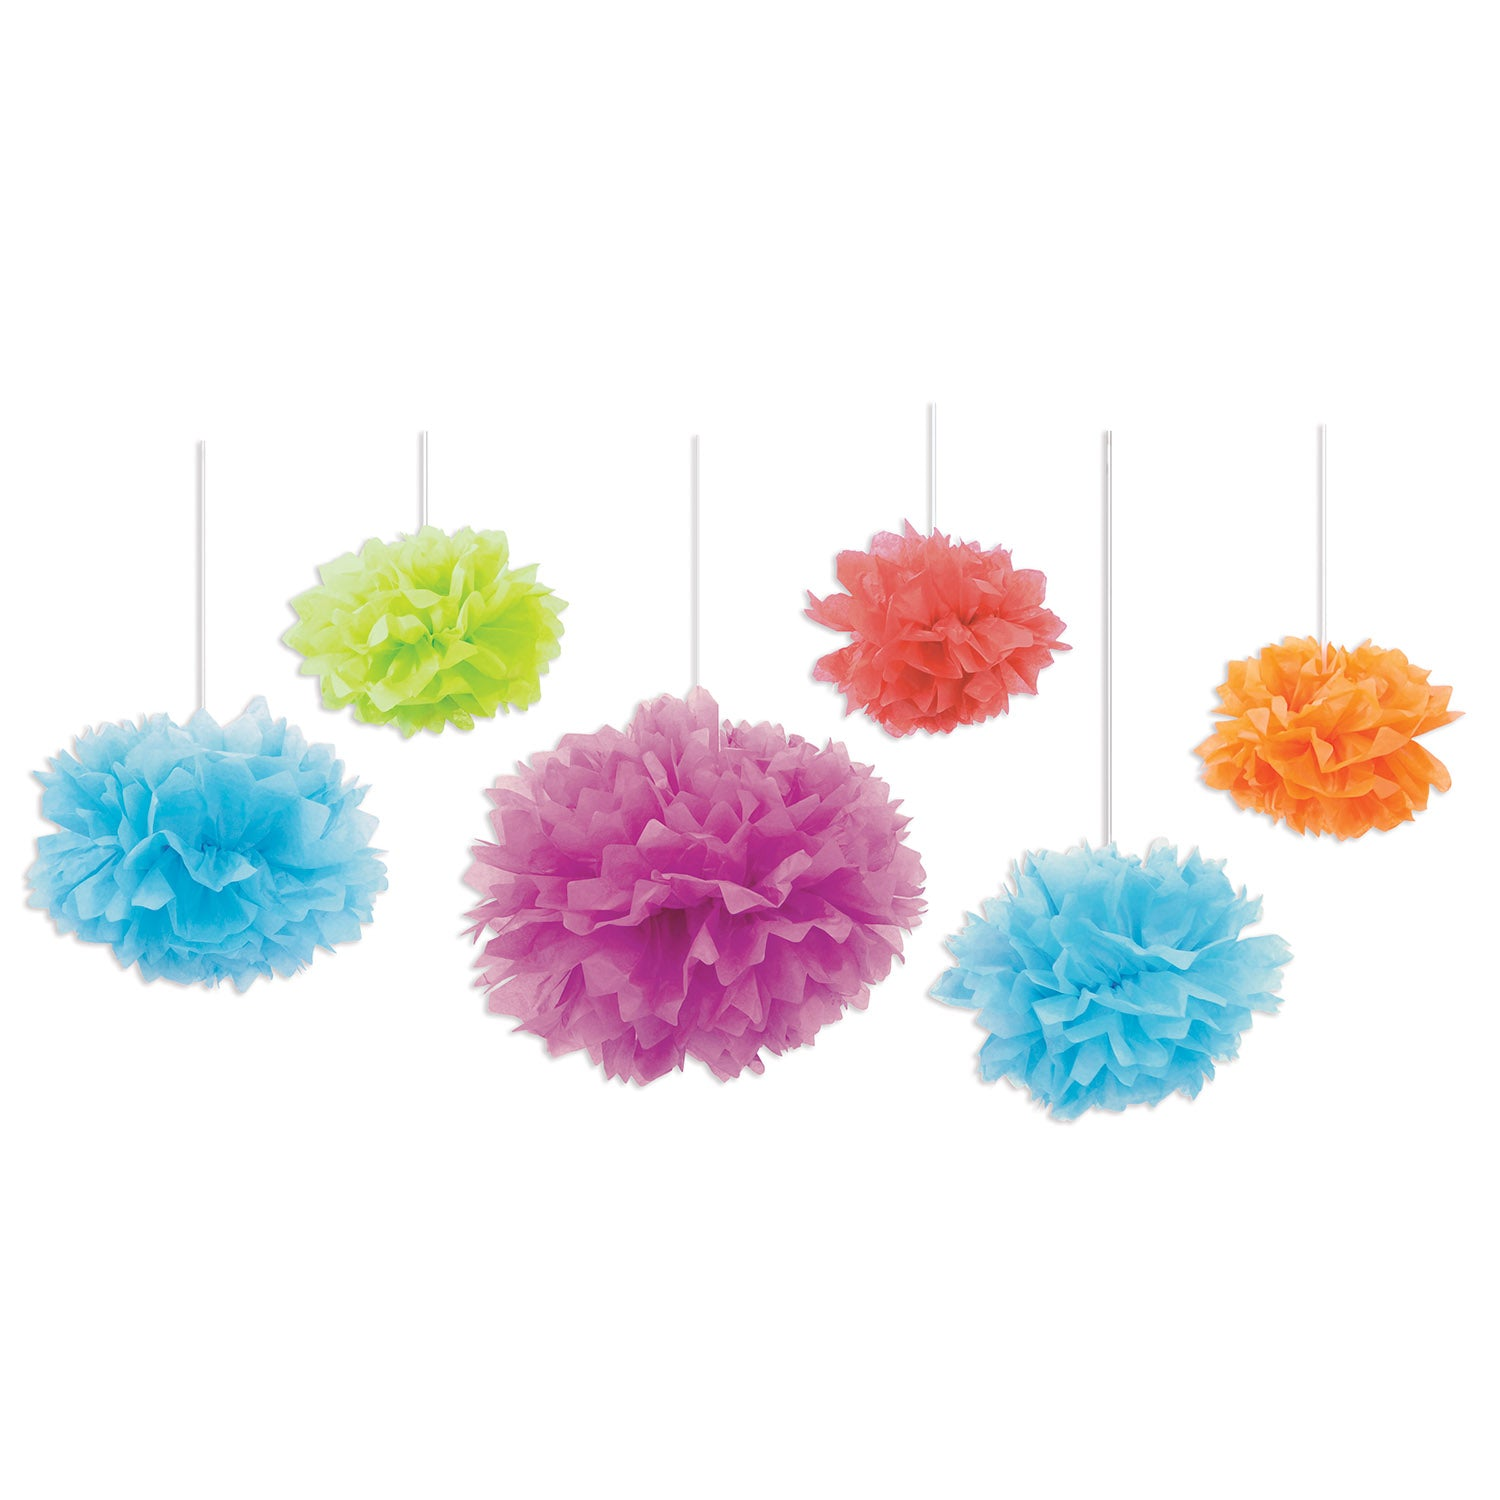 Tissue Fluff Balls (6/Pkg), asstd colors by Beistle - Birthday Party Supplies Decorations